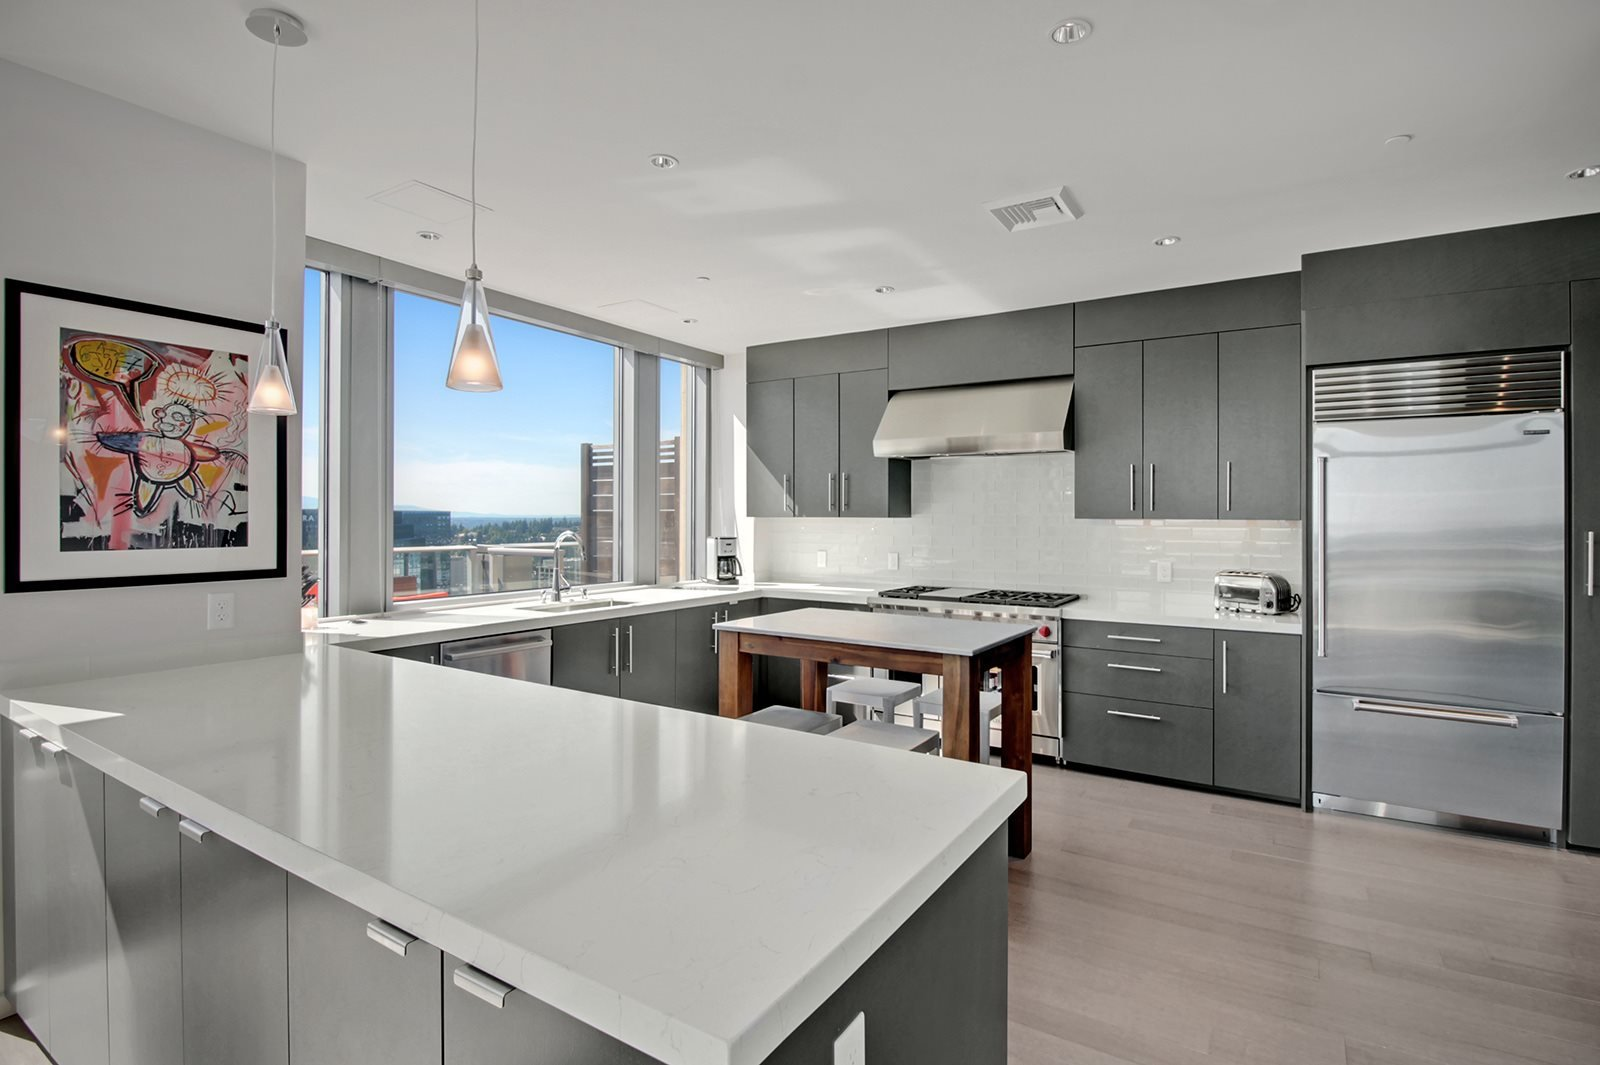 Luxurious Kitchen at The Bravern in Bellevue, WA